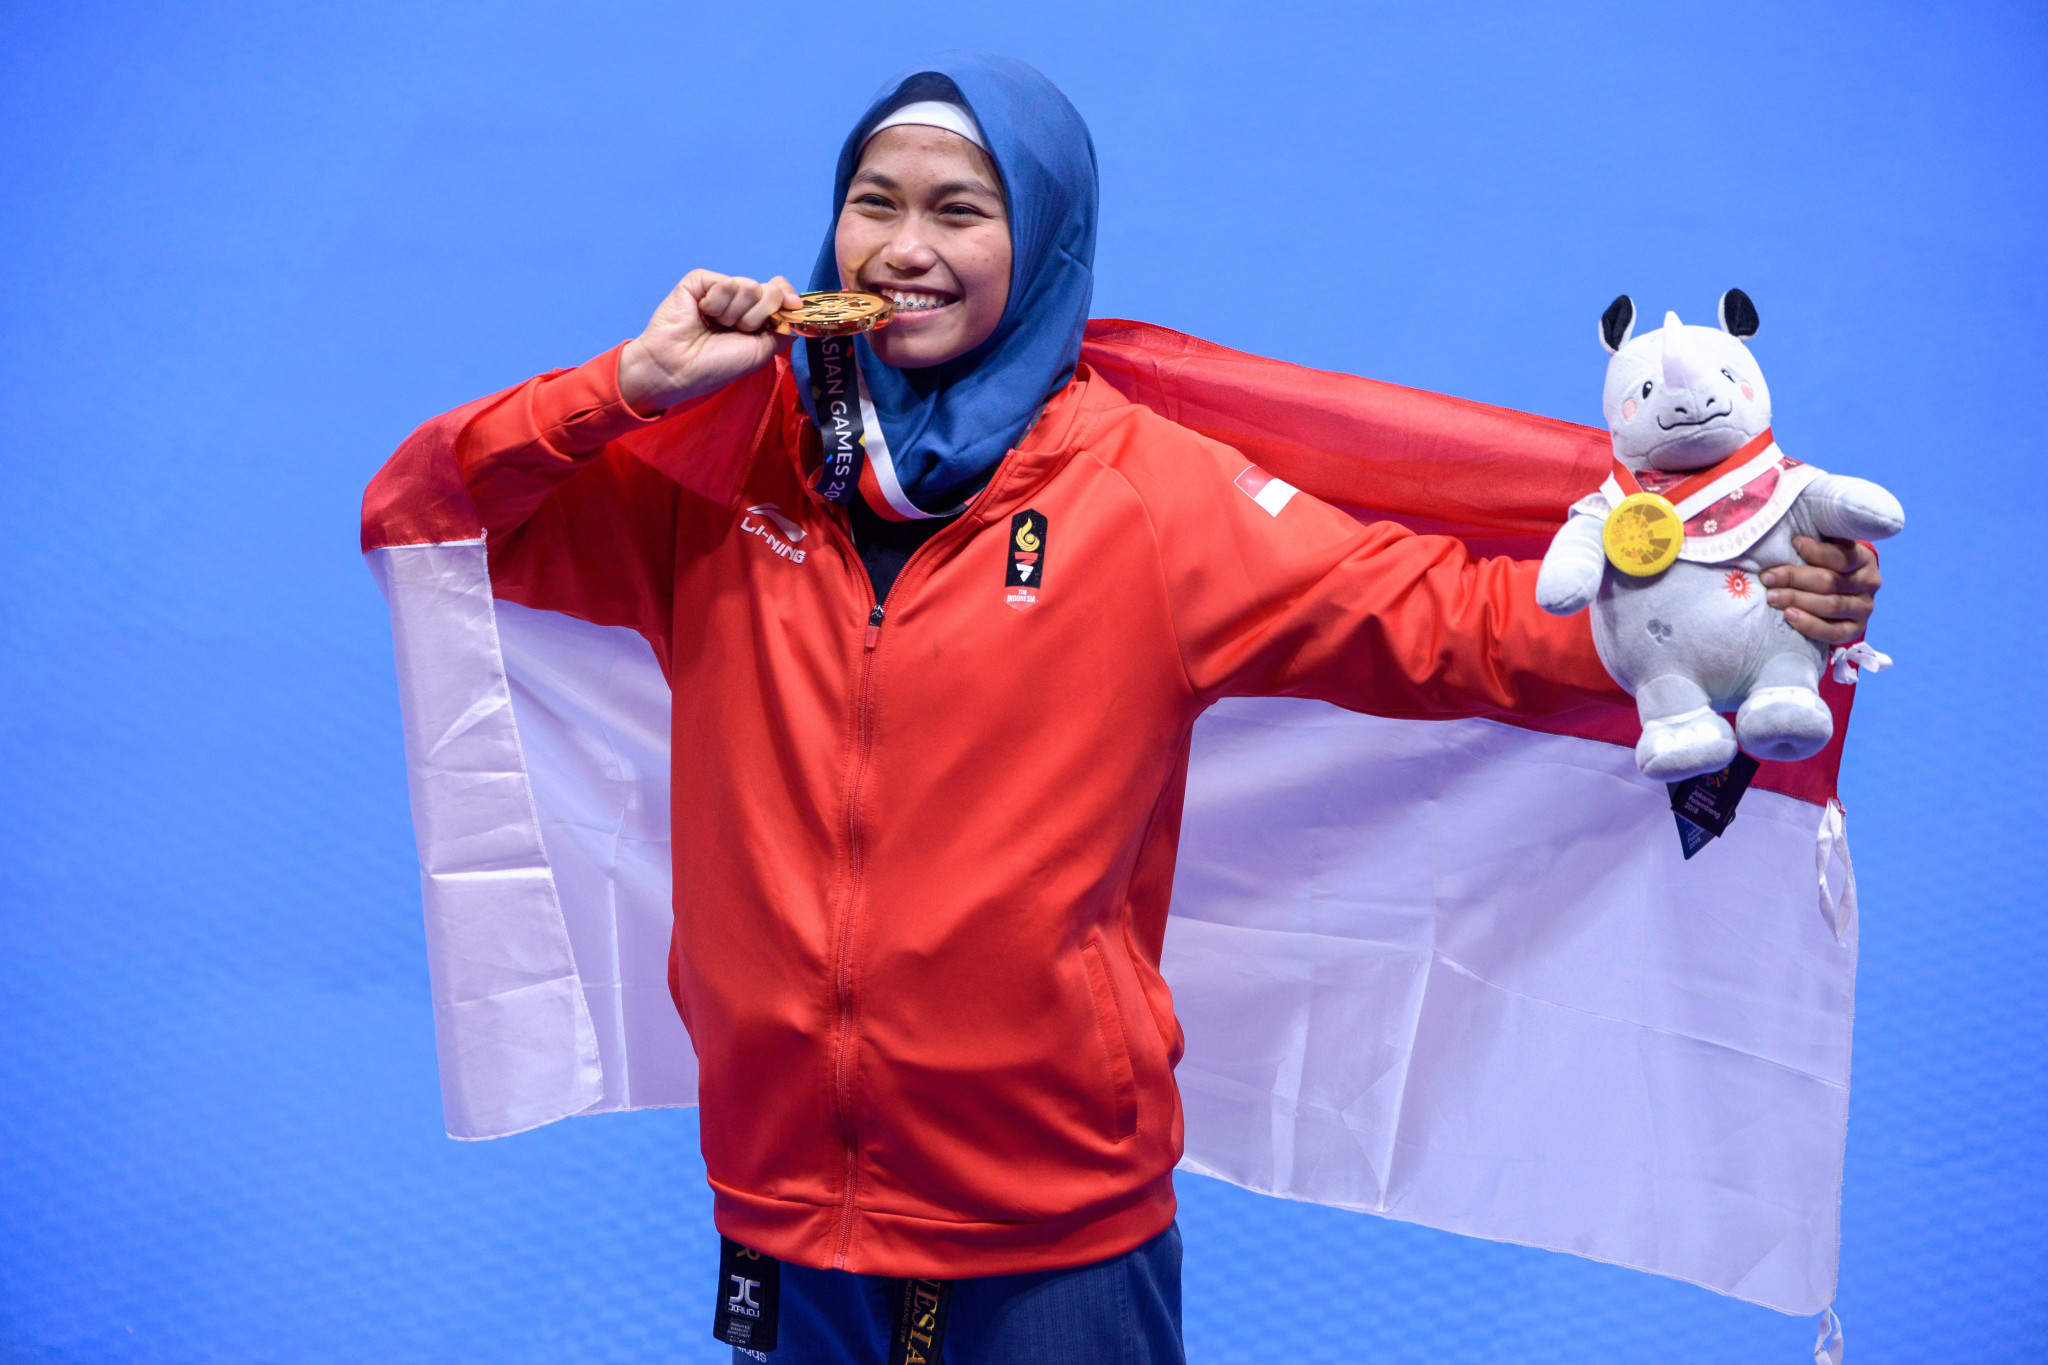 Indonesia's Defia Rosmaniar won her country's first gold of the Asian Games today, in the women's individual poomsae taekwondo final ©Getty Images